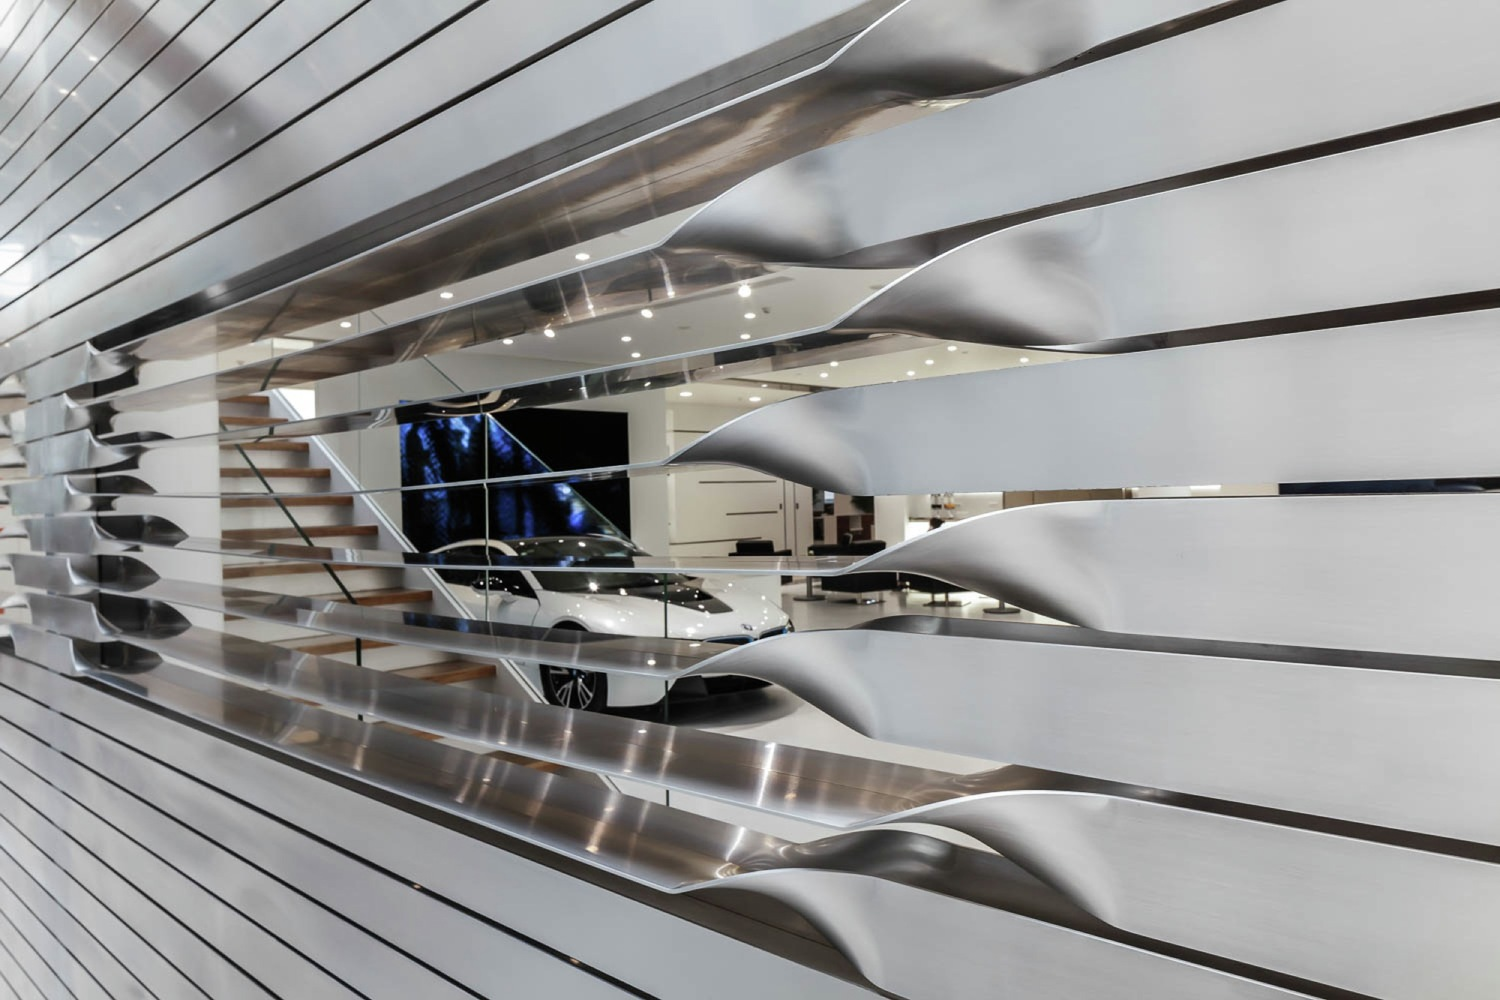 New Design Store Bmw Design News Design NewsDesign News: New BMW Store In  Chinanew Design